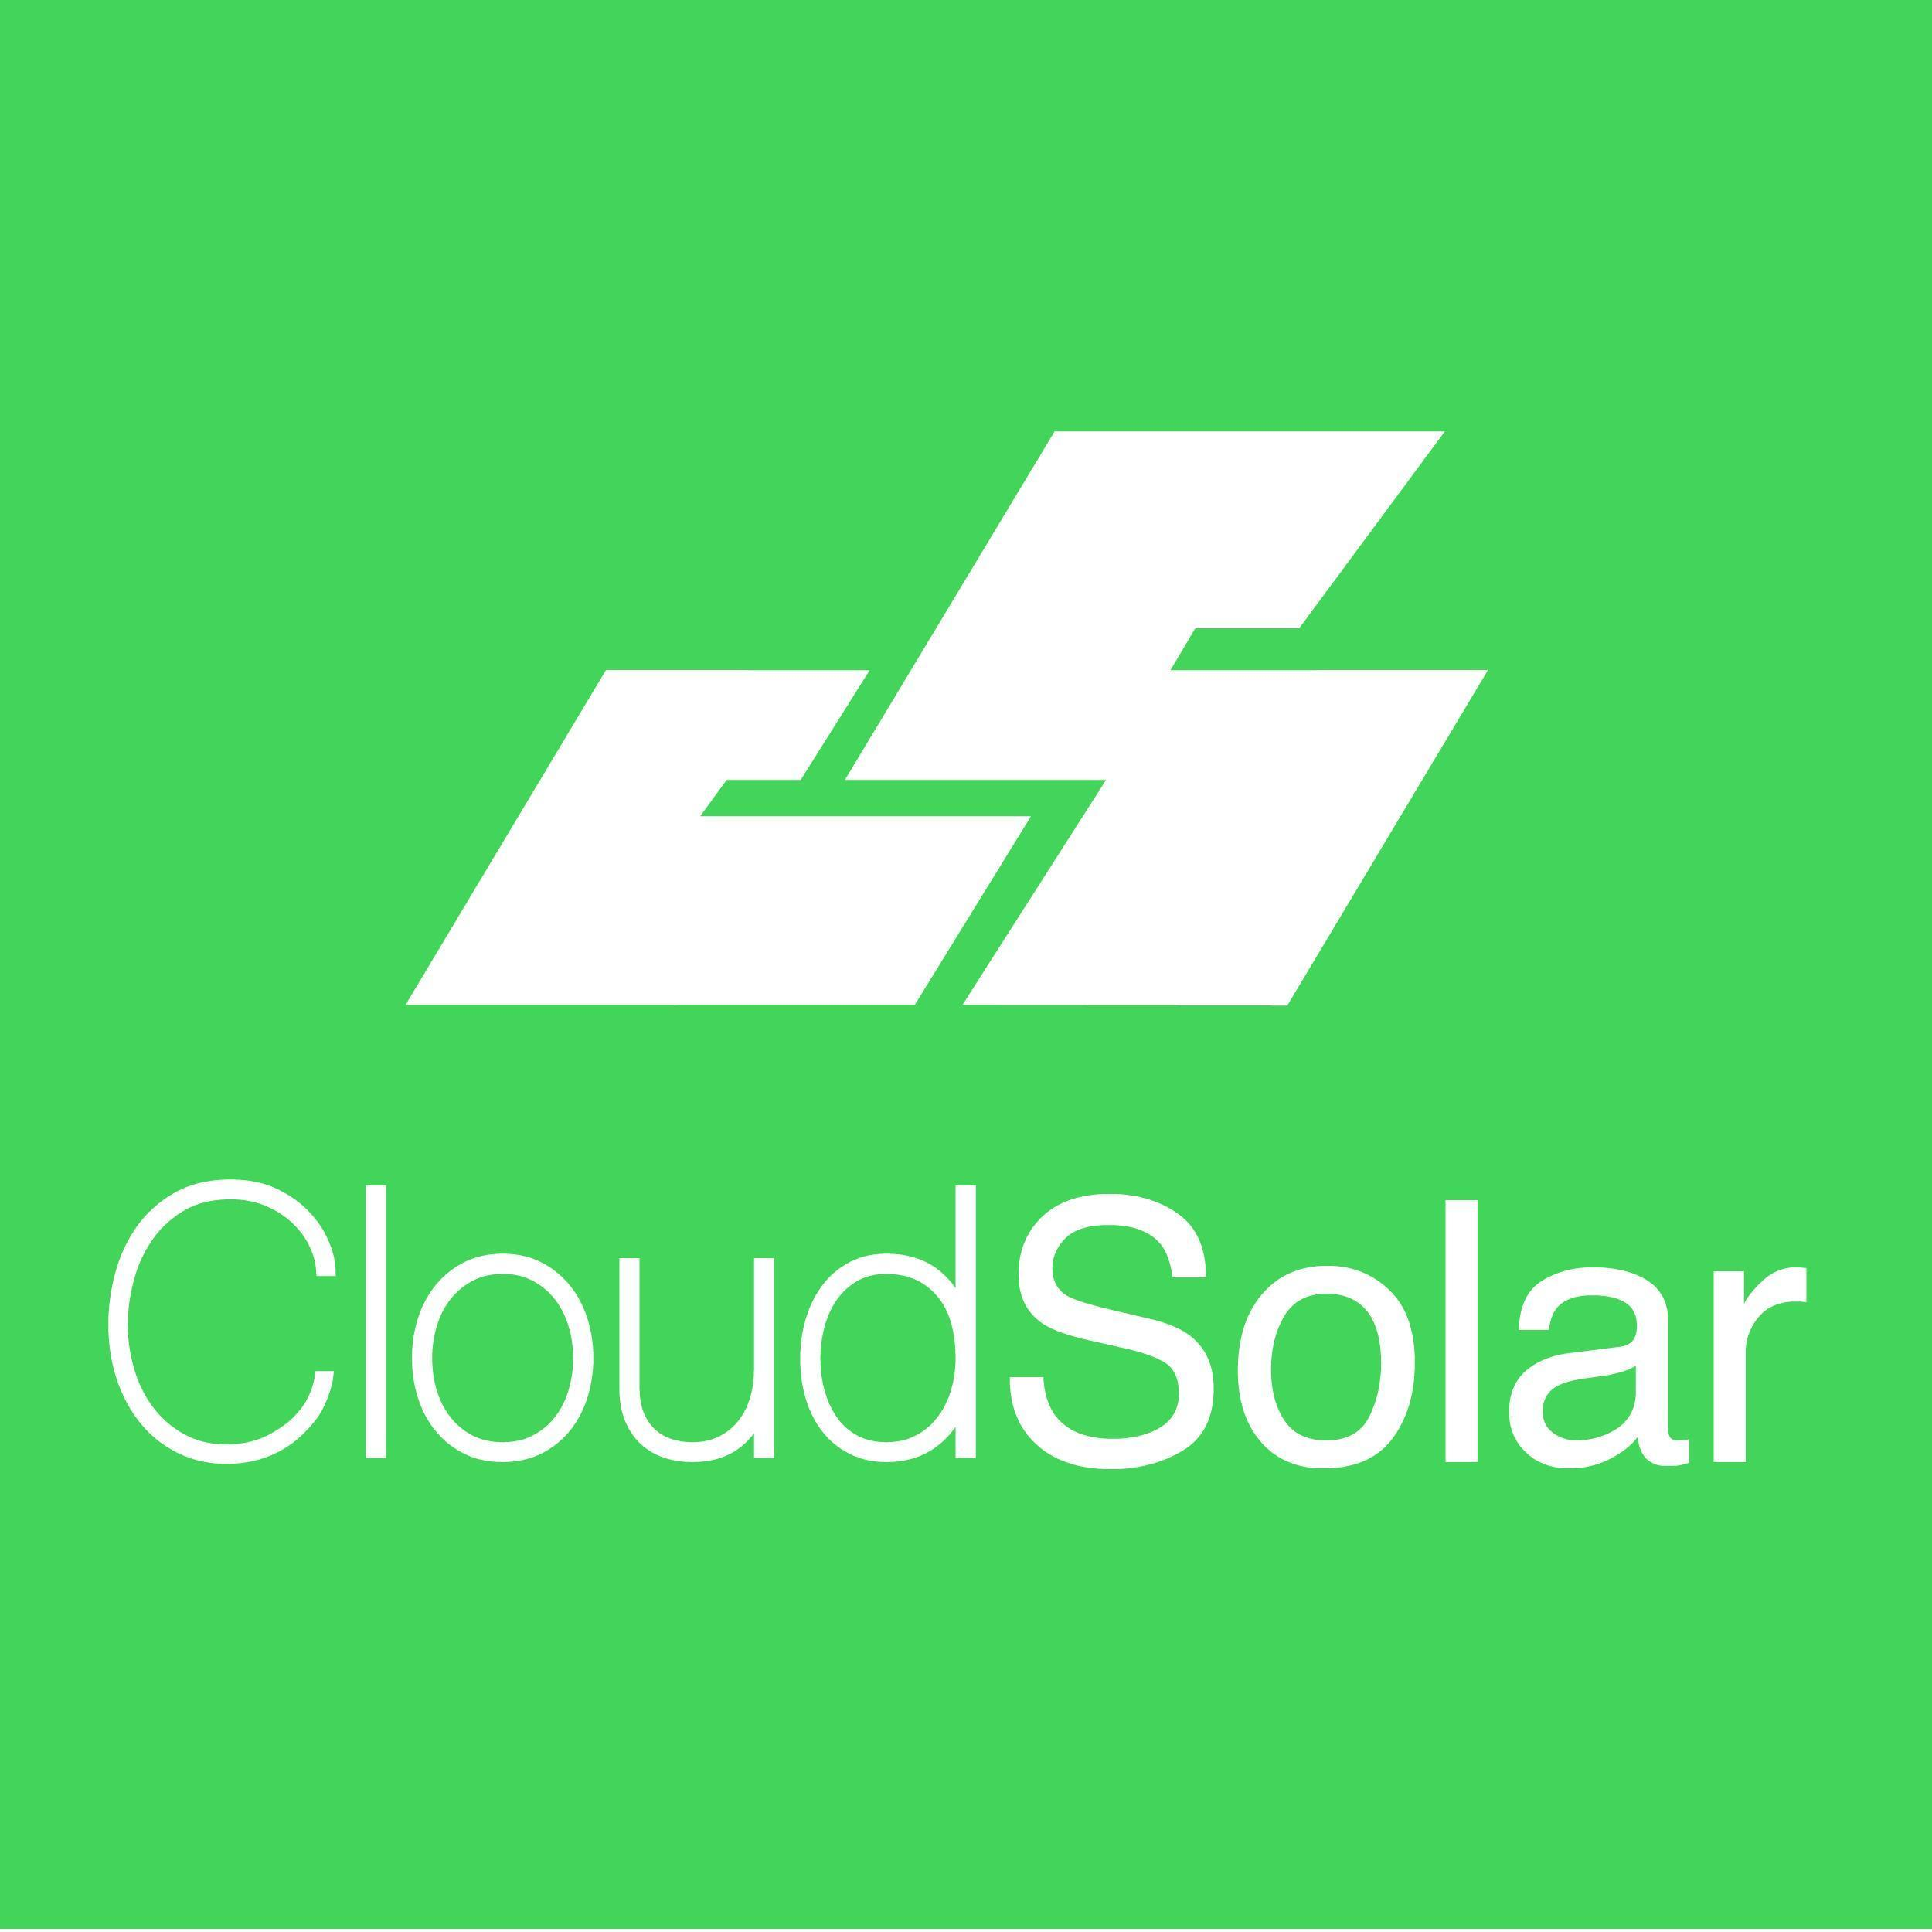 CloudSolar